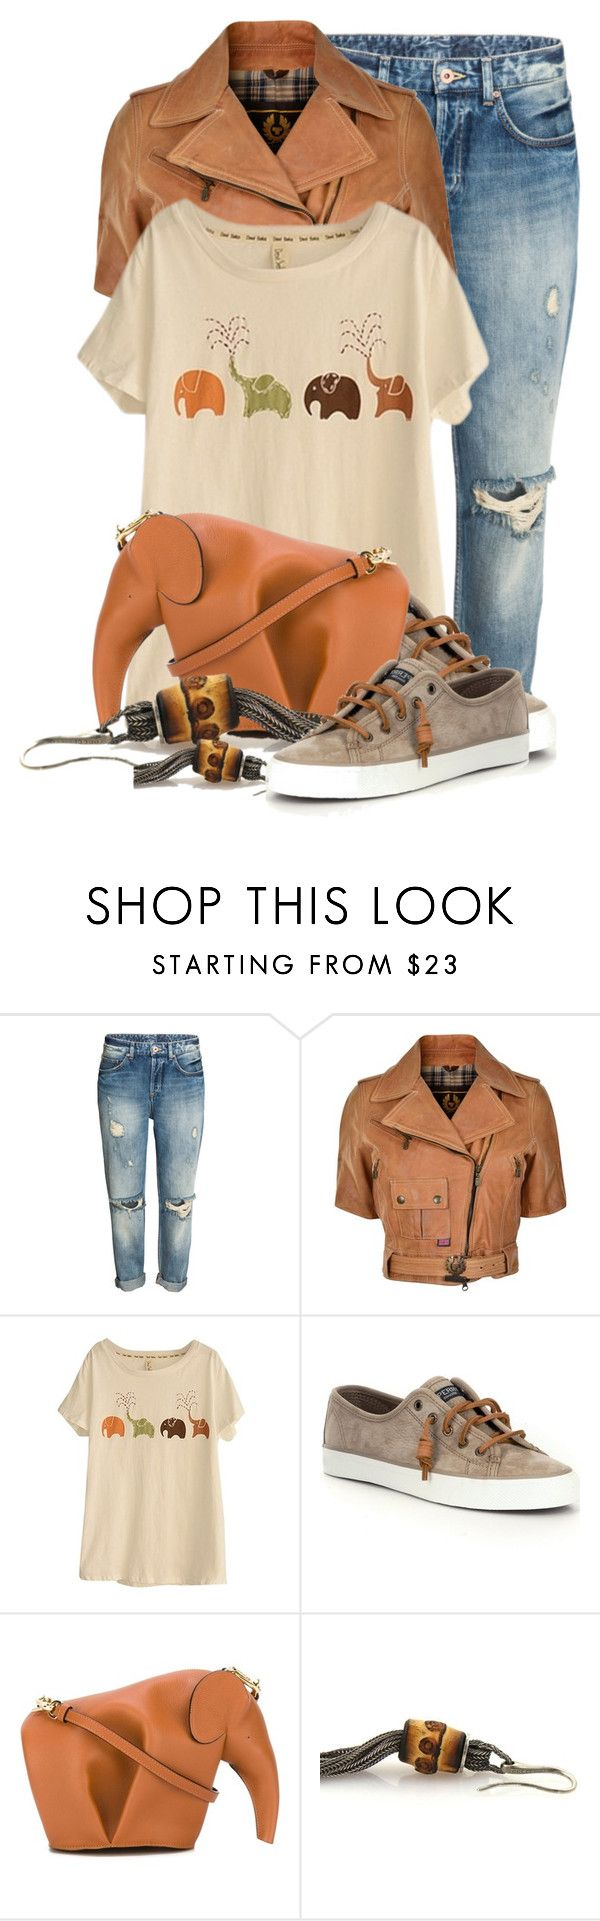 """""""Fun With Elephants"""" by queenrachietemplateaddict ❤ liked on Polyvore featuring Belstaff, WithChic, Sperry, Loewe, Gucci, leatherjacket, sneakers, Tshirt and Elephants"""